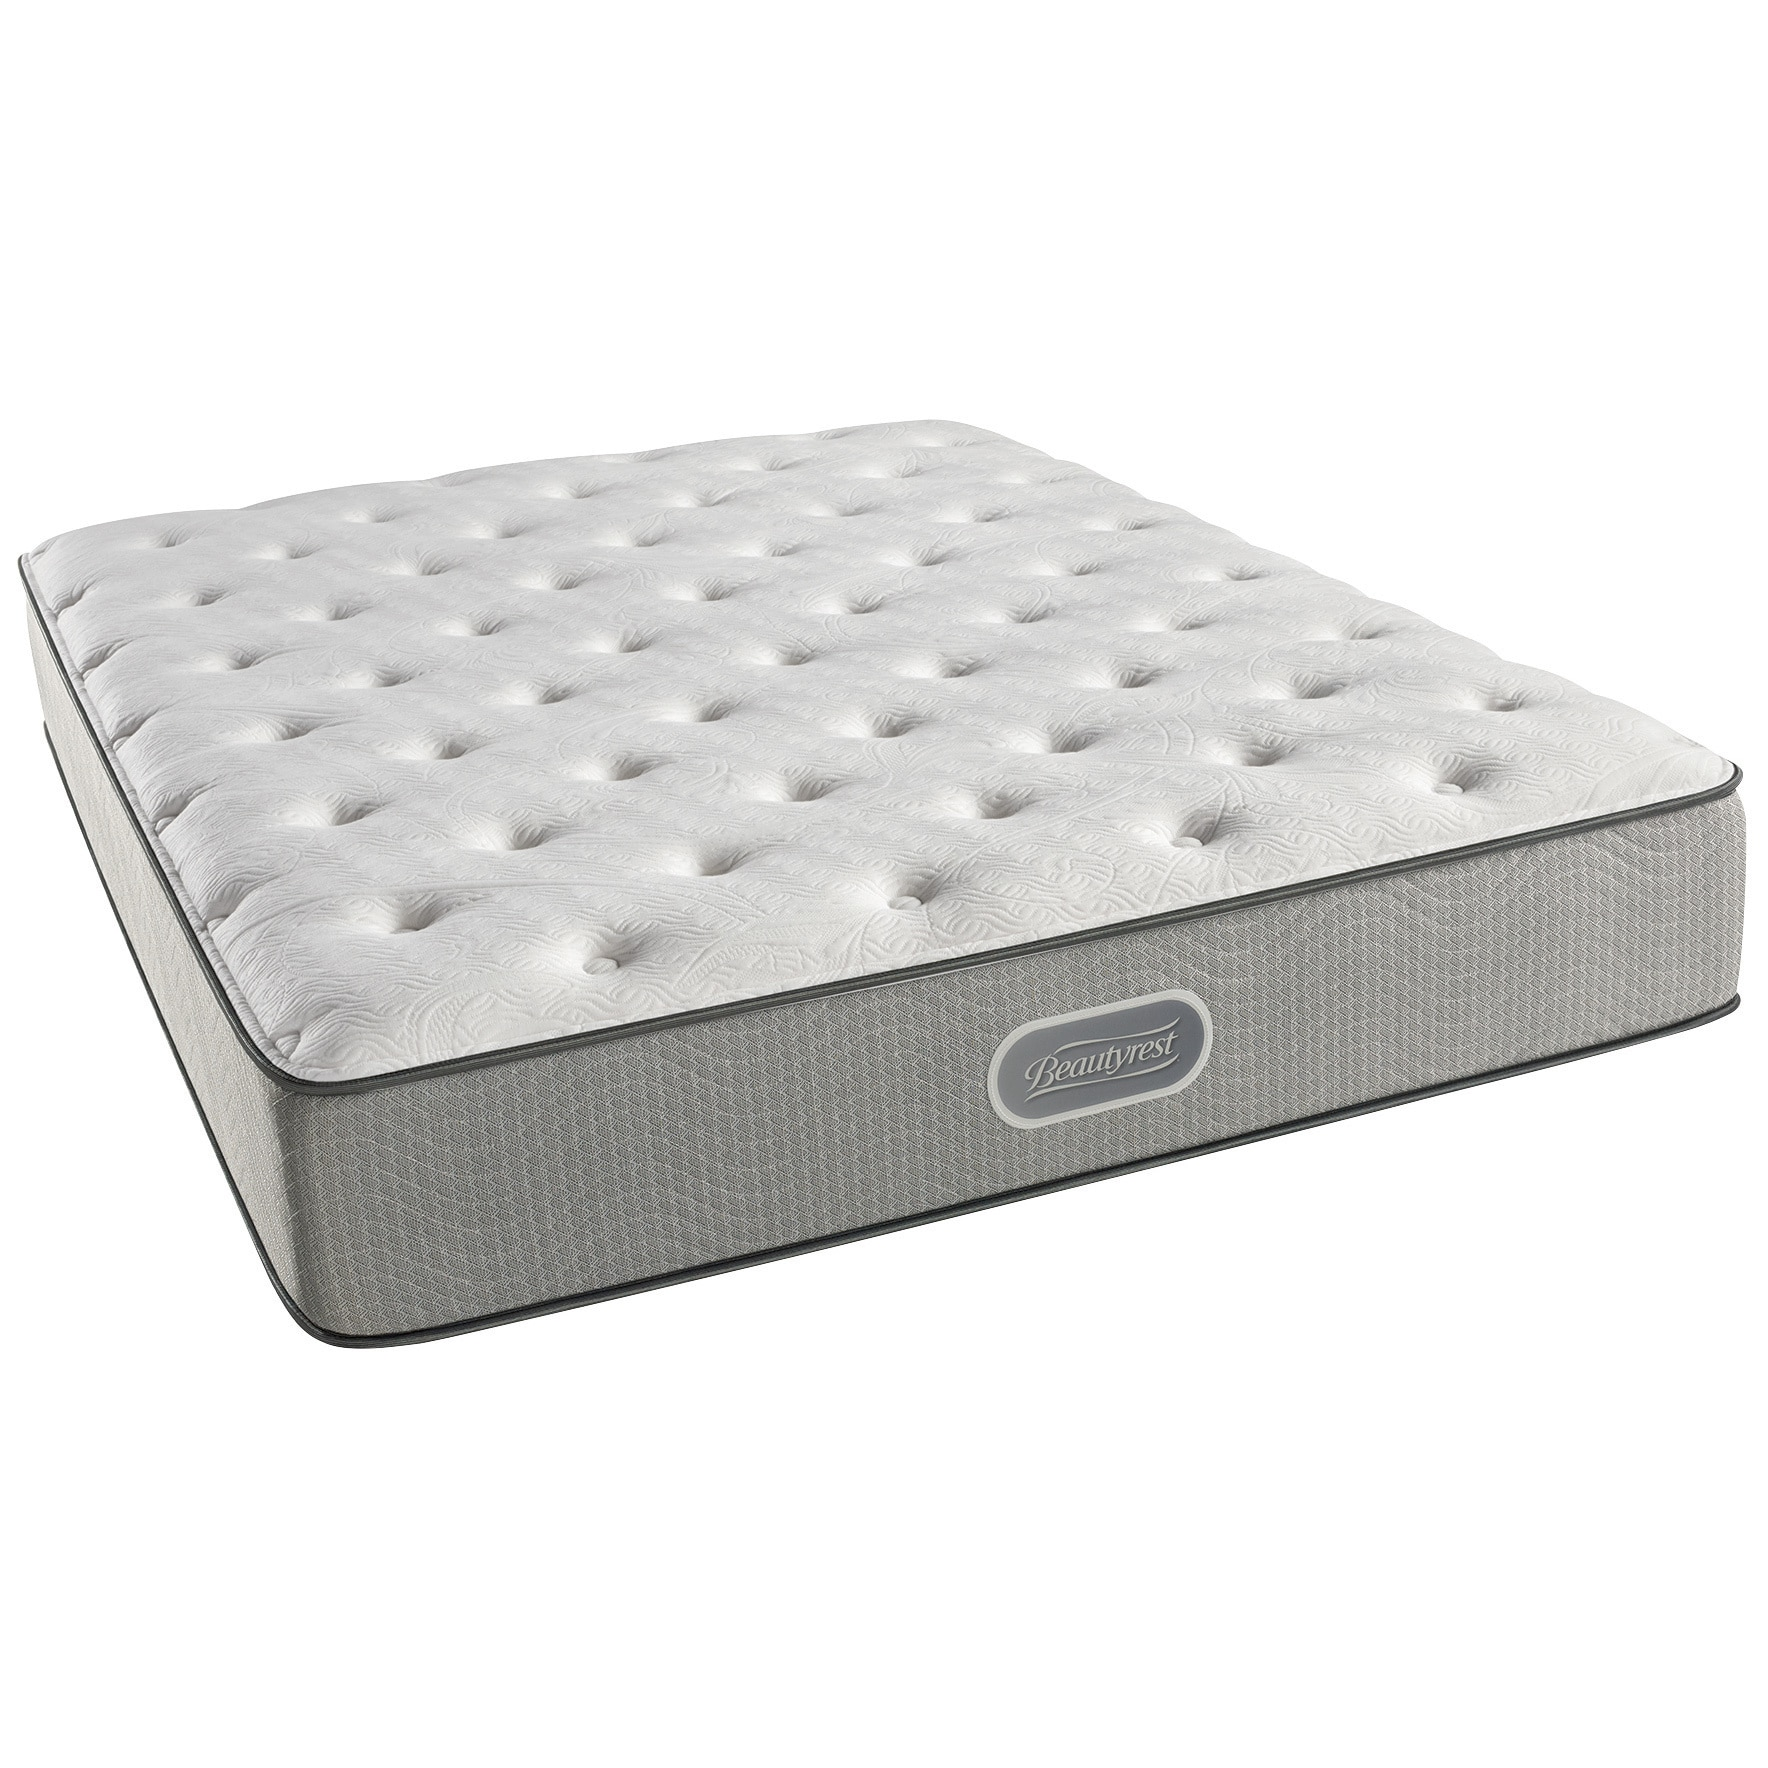 shop beautyrest maddyn factory select plush california king size mattress set on sale free shipping today overstockcom 8060471 - Simmons Beautyrest Mattress